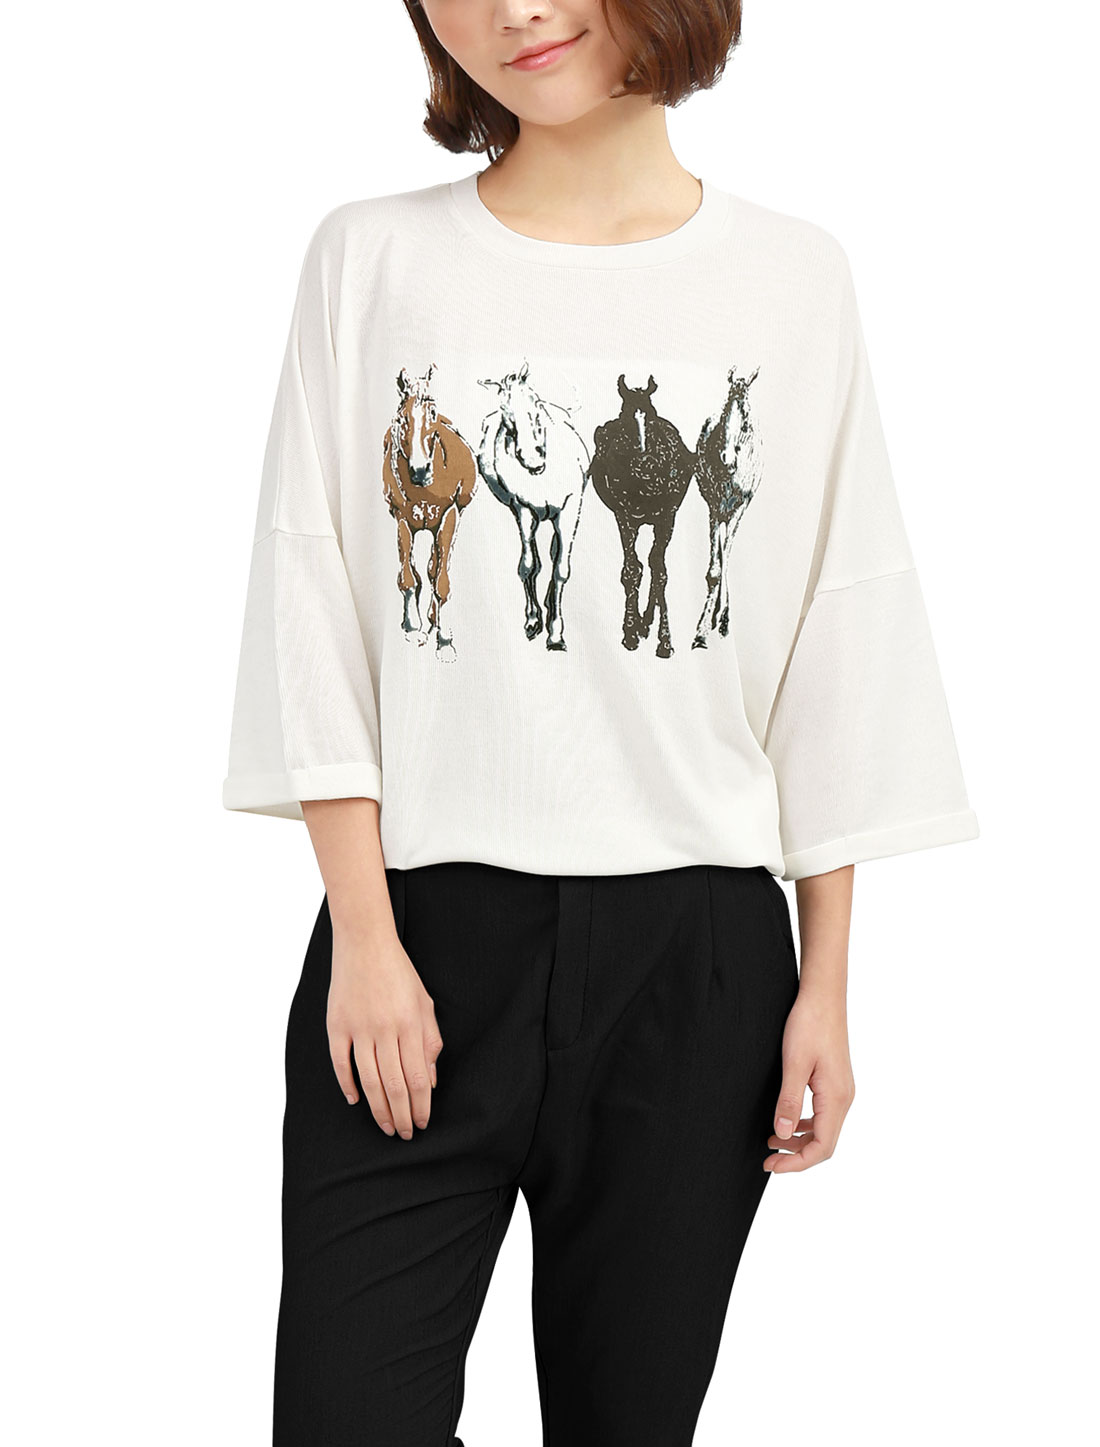 Lady Round Neck 3/4 Batwing Sleeve Horse Pattern Spring Tunic Tops Ivory XS